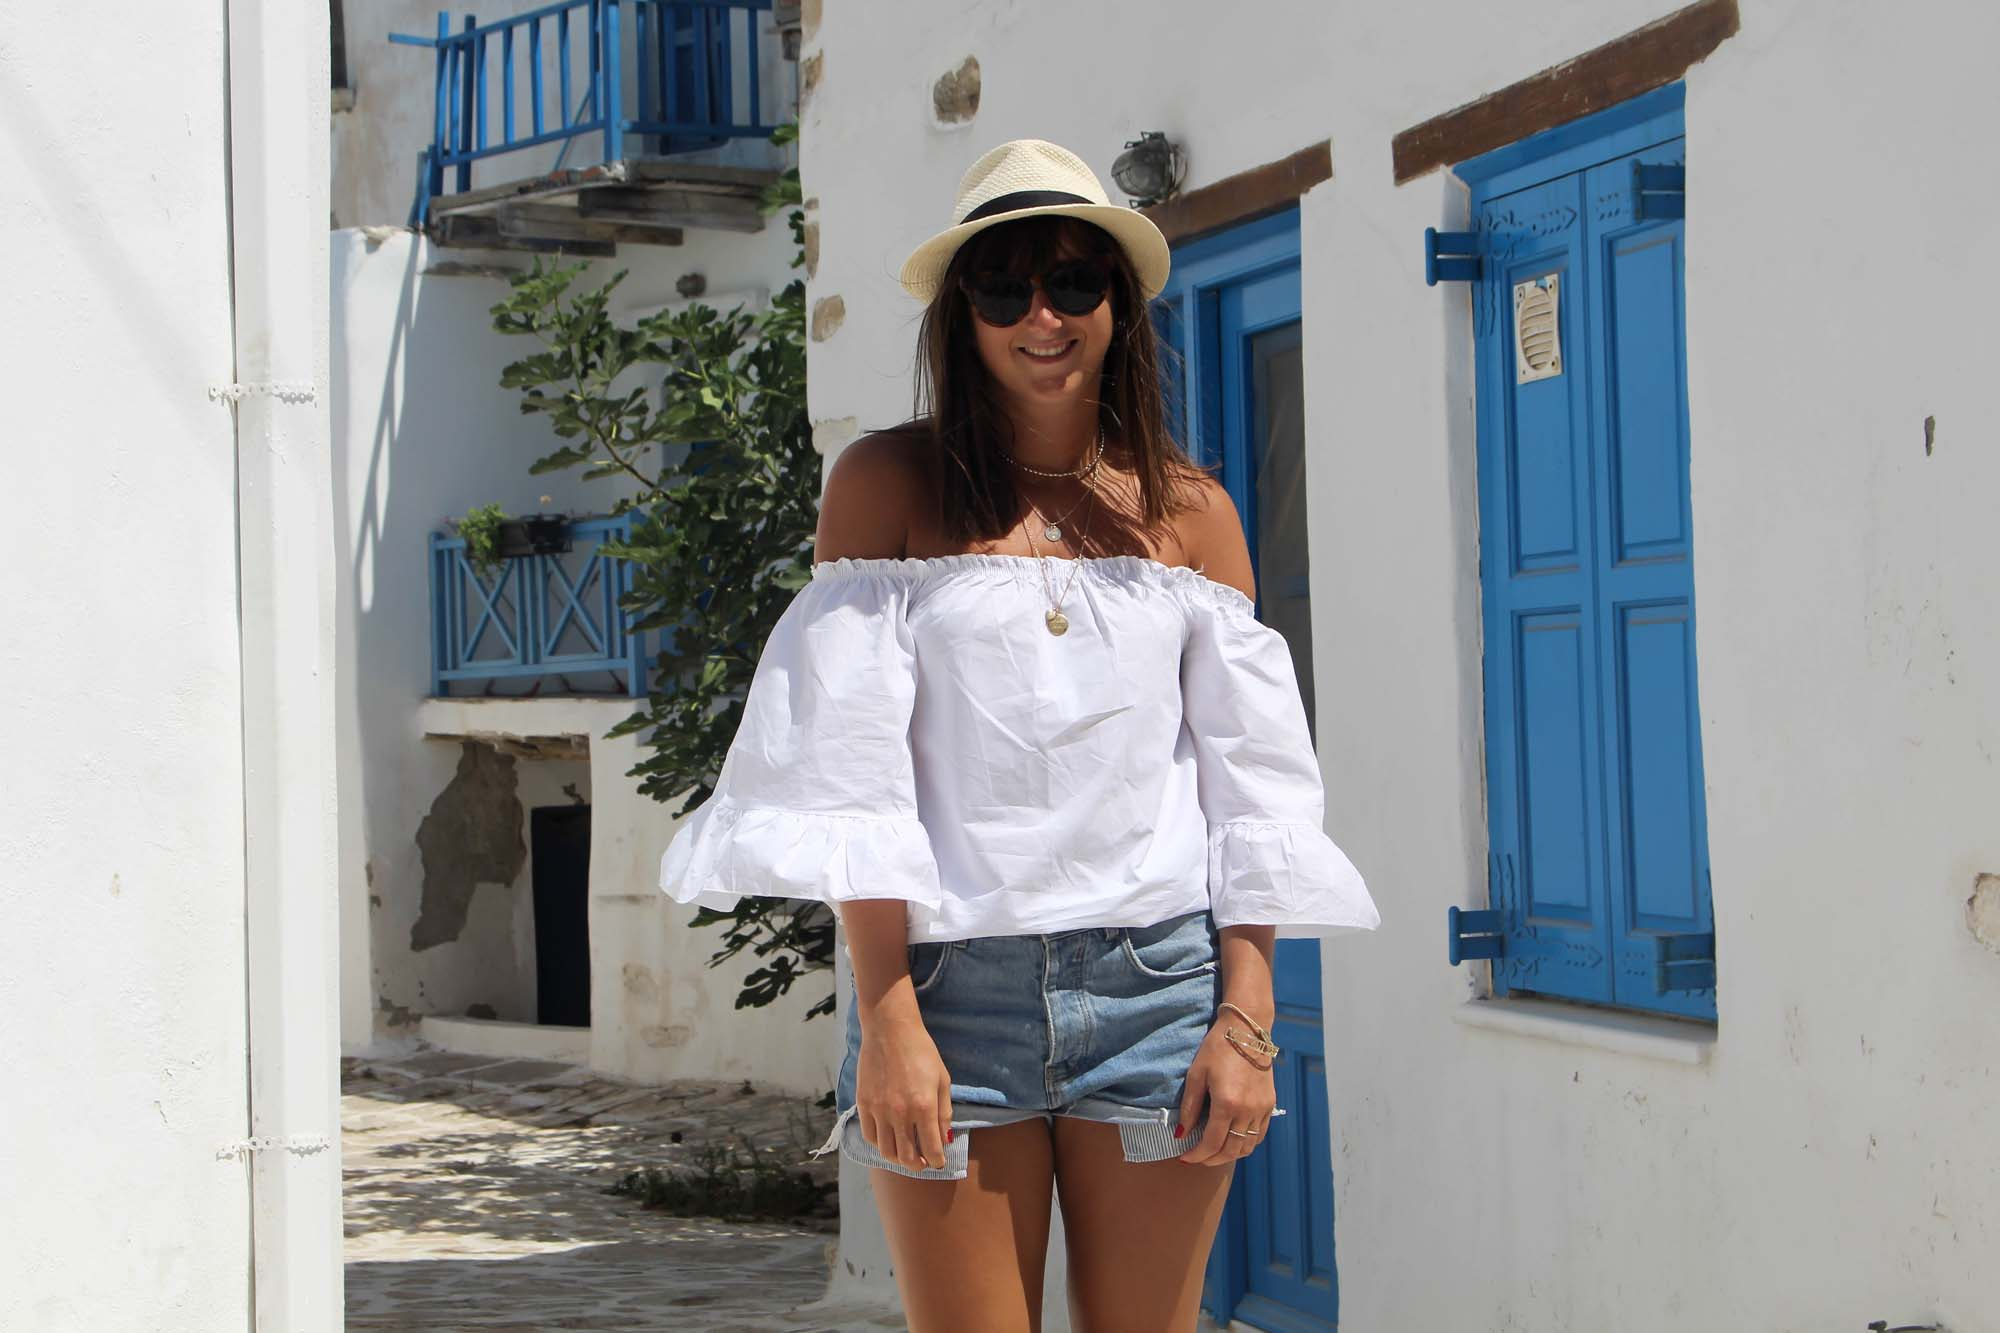 look-greece-paros-linstantflo-15-sur-16